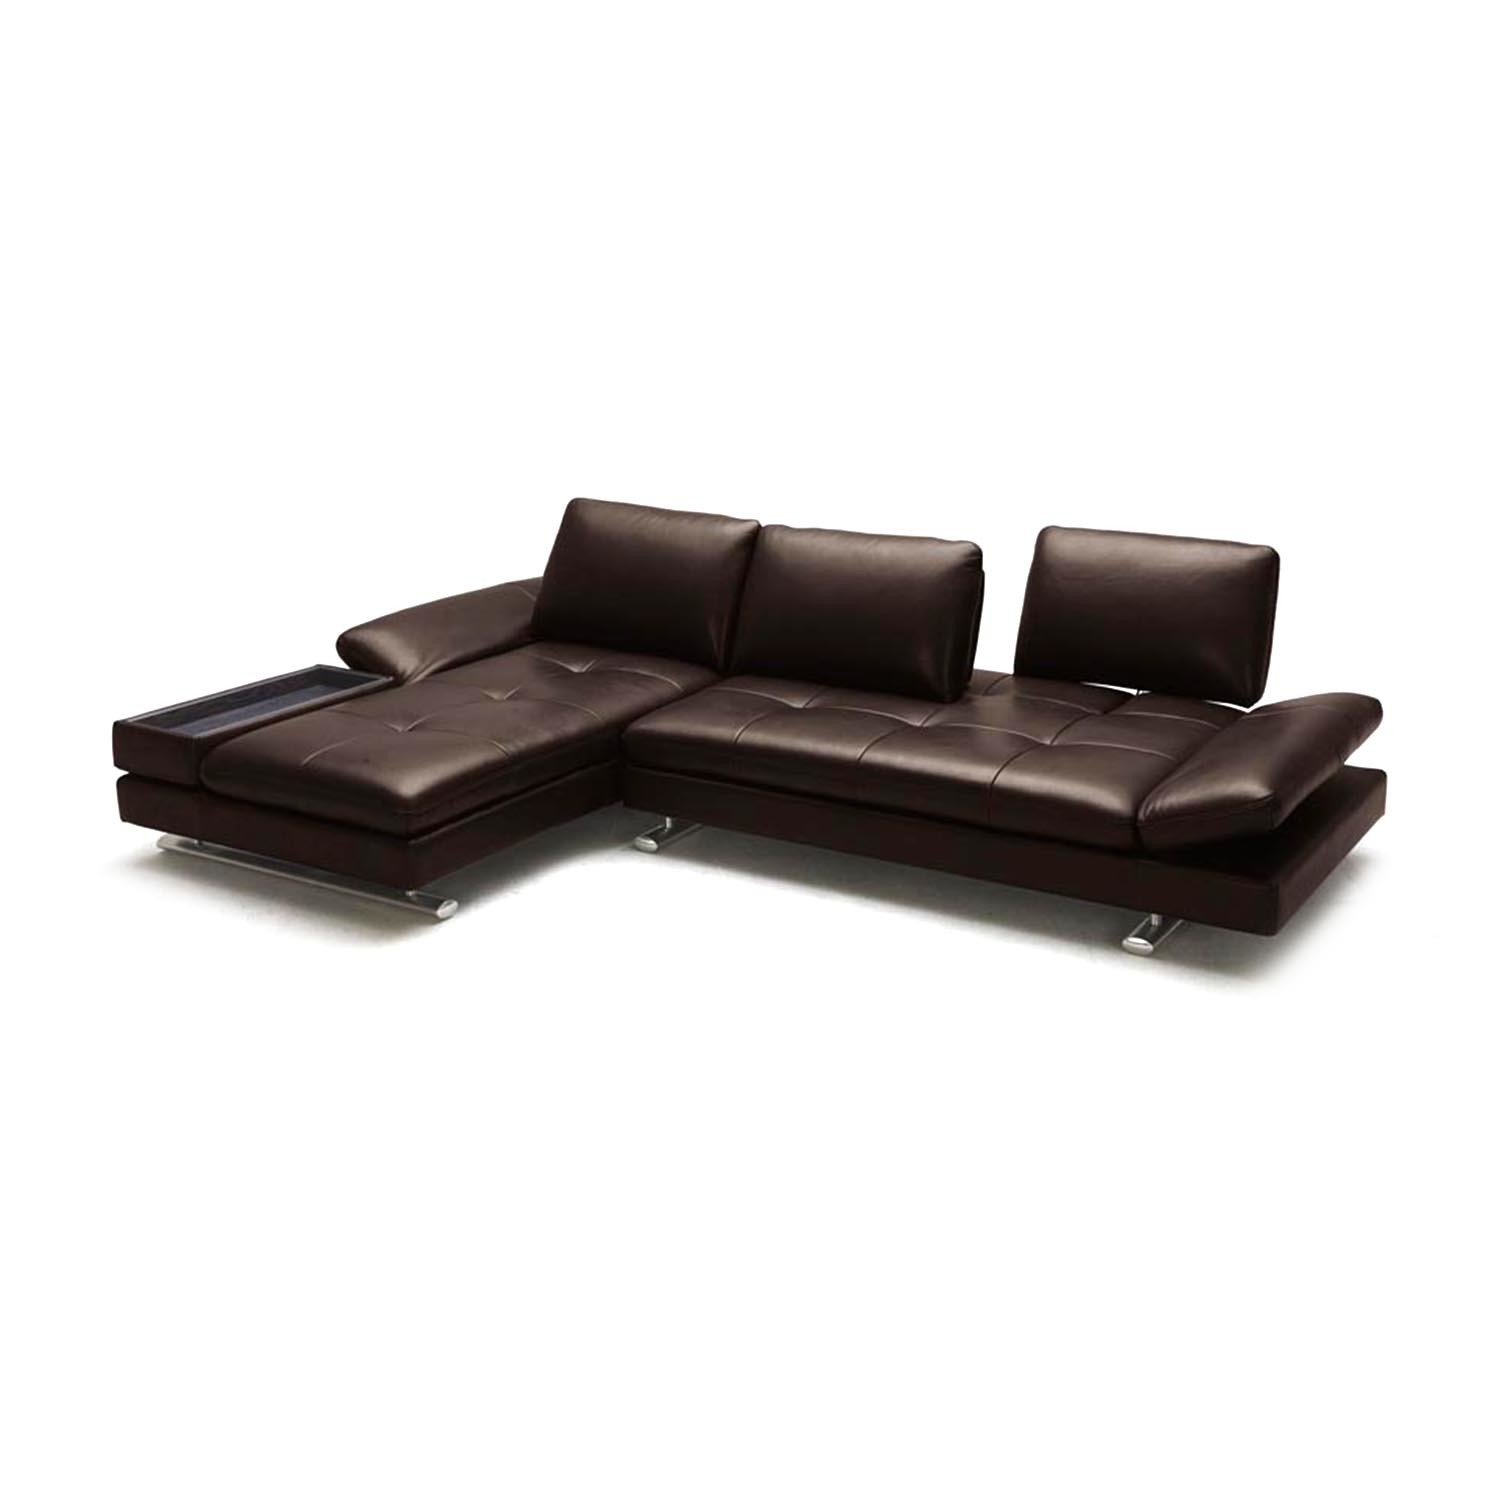 Ritz sectional sofa left chaise zuri furniture for Sofa chaise 1 lugar